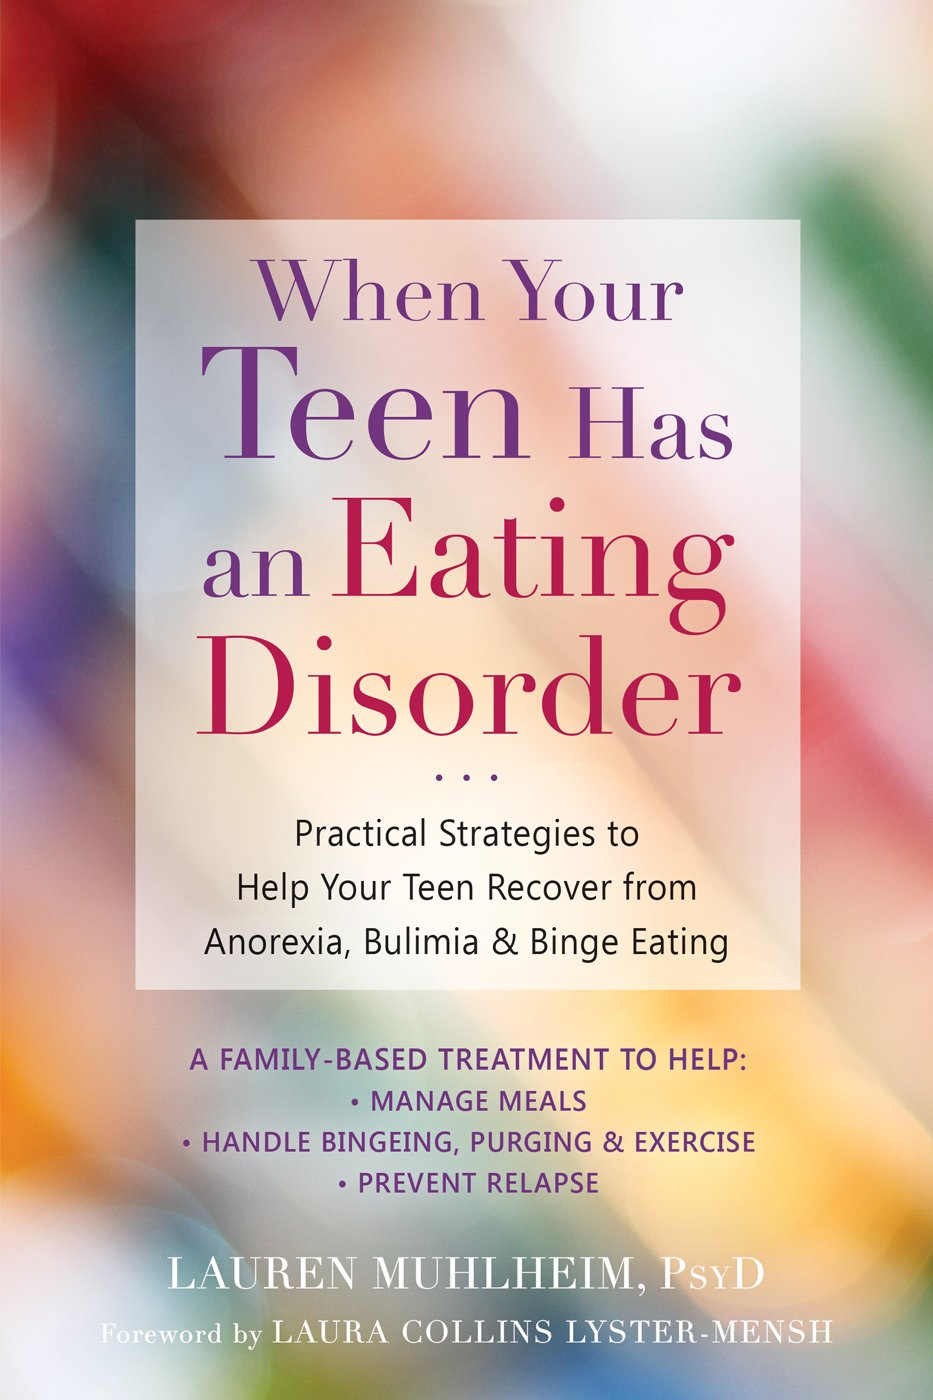 When Your Teen Has an Eating Disorder: Practical Strategies to Help Your Teen Recover from Anorexia, Bulimia, and Binge Eating by New Harbinger Publications